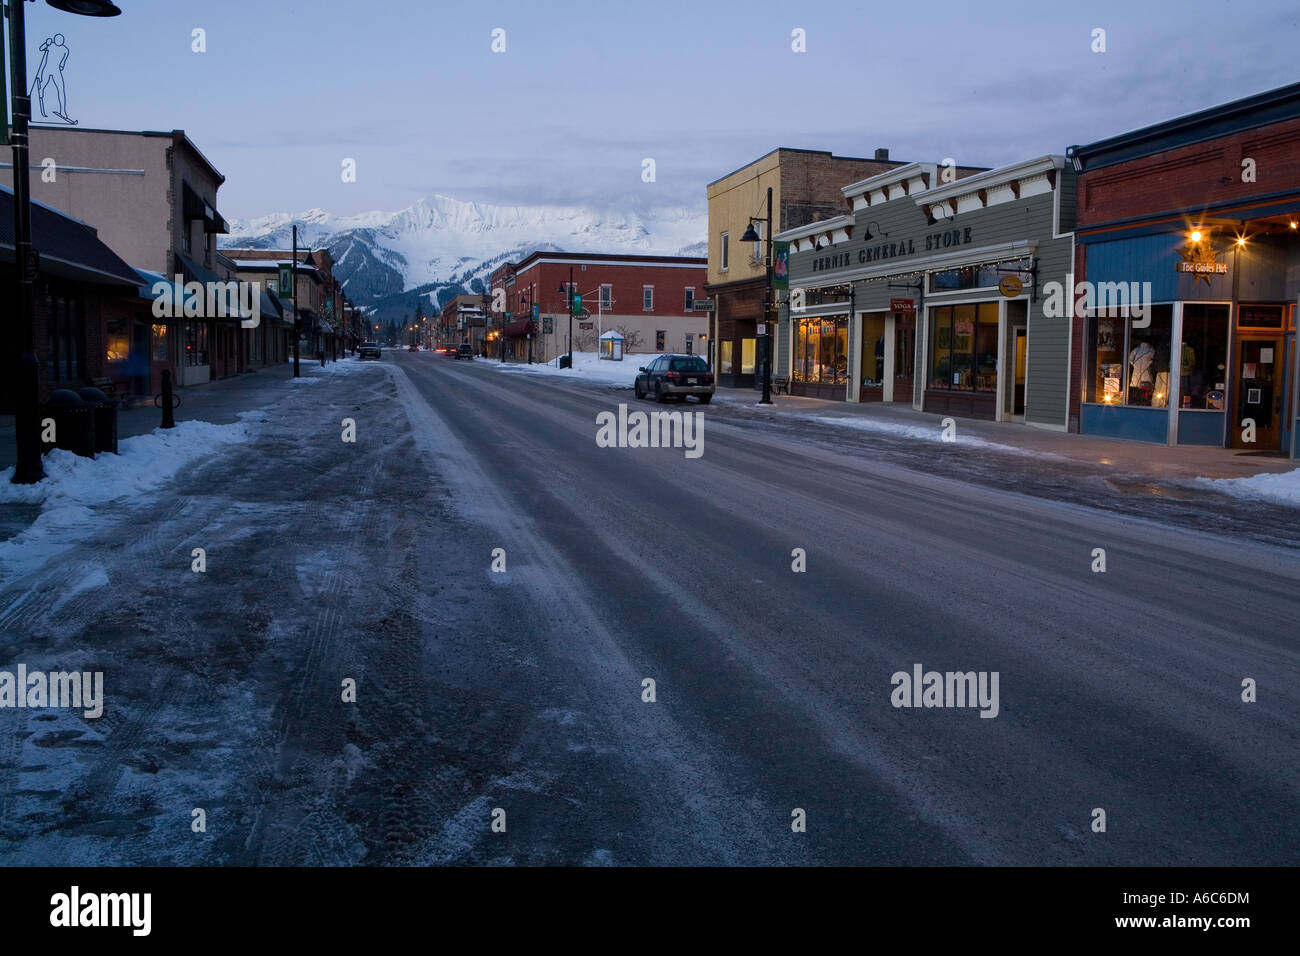 Street scenes from Fernie which is a ski town in British Columbia Canada - Stock Image